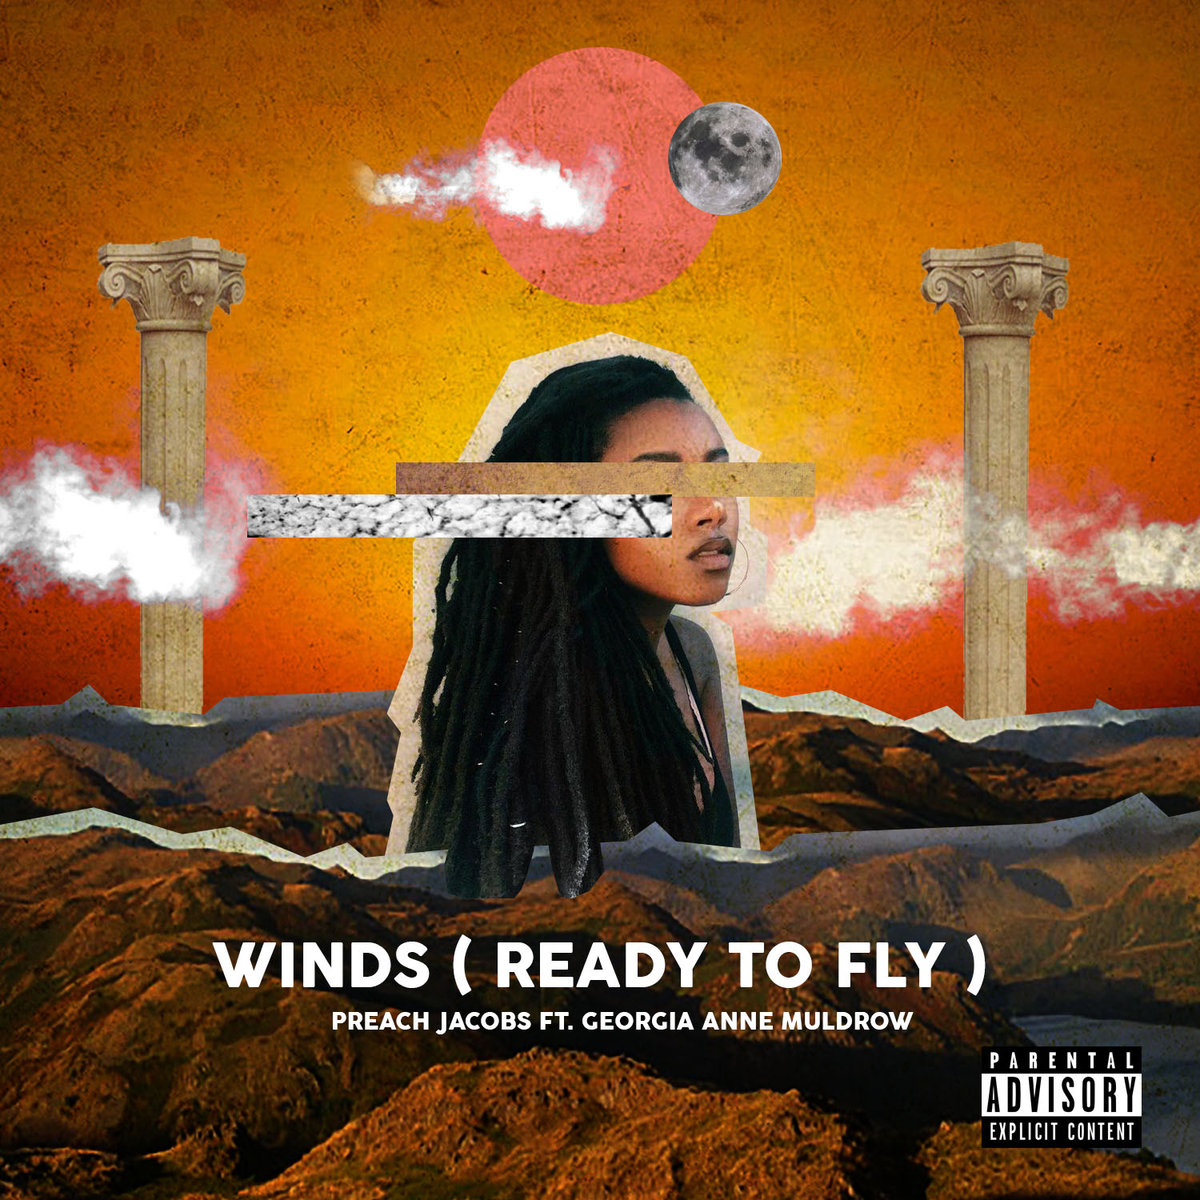 Preach Jacobs – Winds (Ready to Fly) ft. Georgia Anne Muldrow